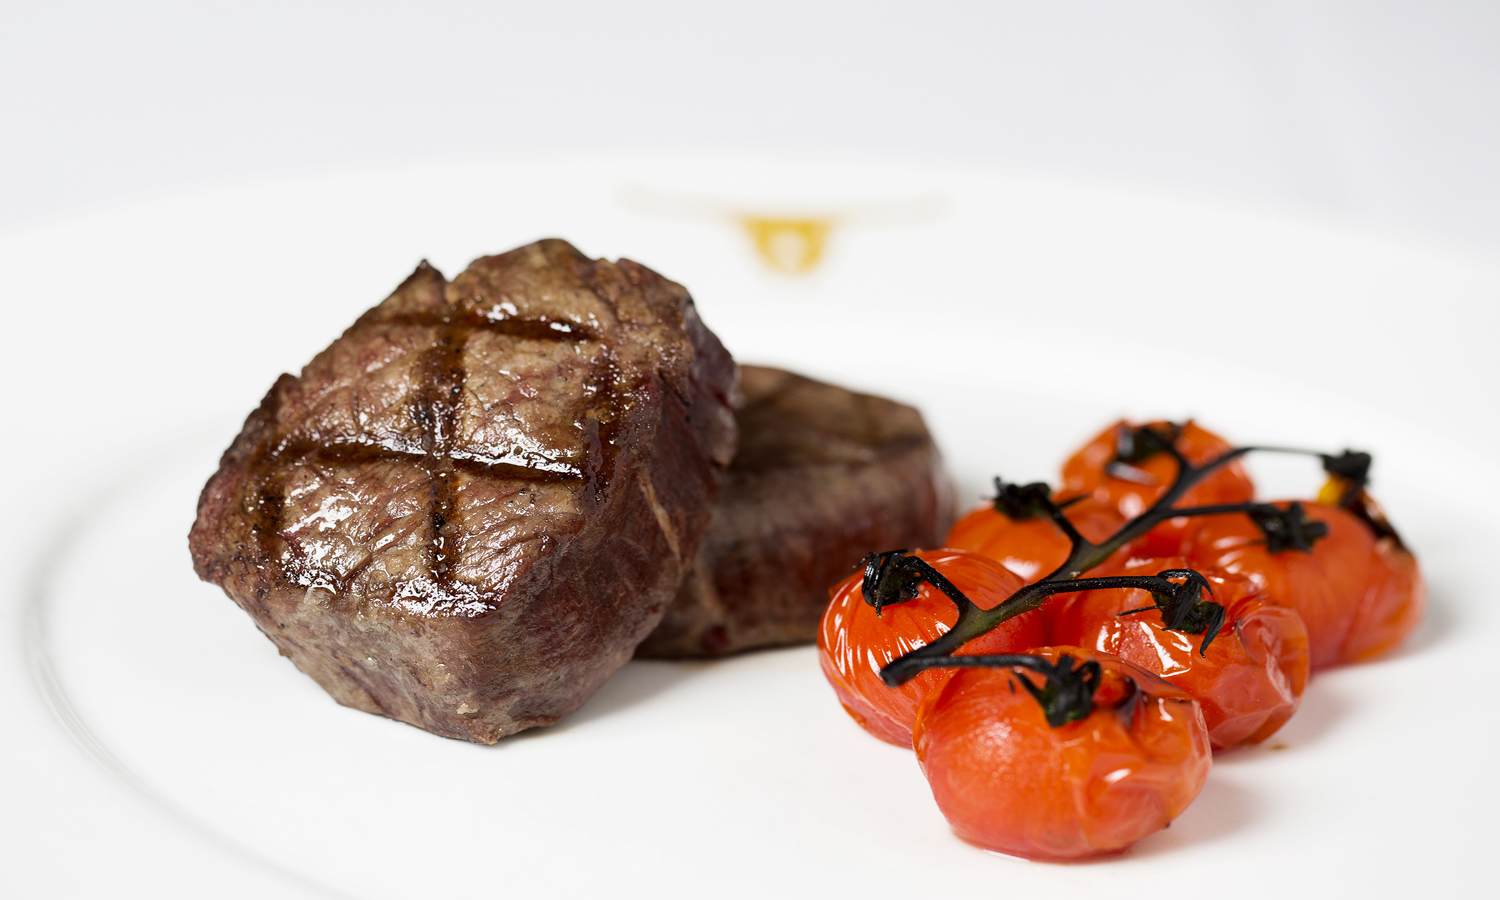 A five-course meal for two at Marco Pierre White's London Steakhouse Company